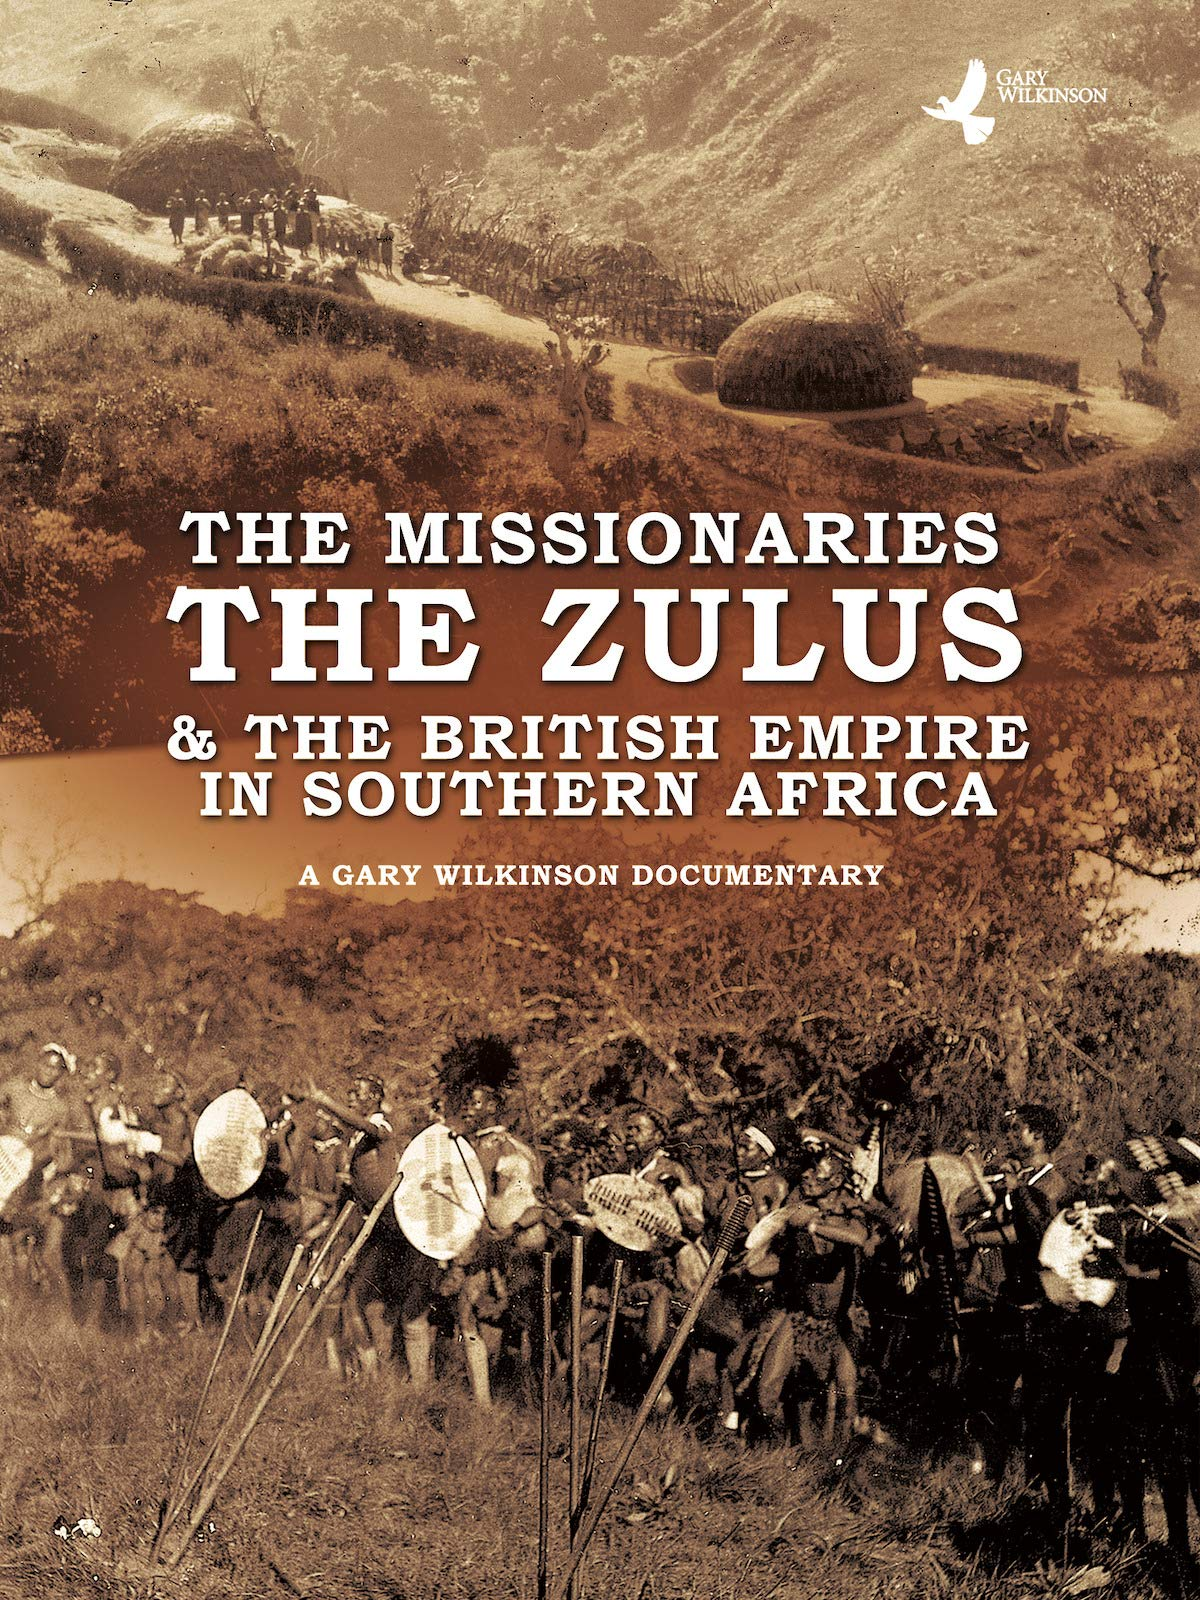 The Missionaries The Zulus & The British Empire in Southern Africa on Amazon Prime Video UK